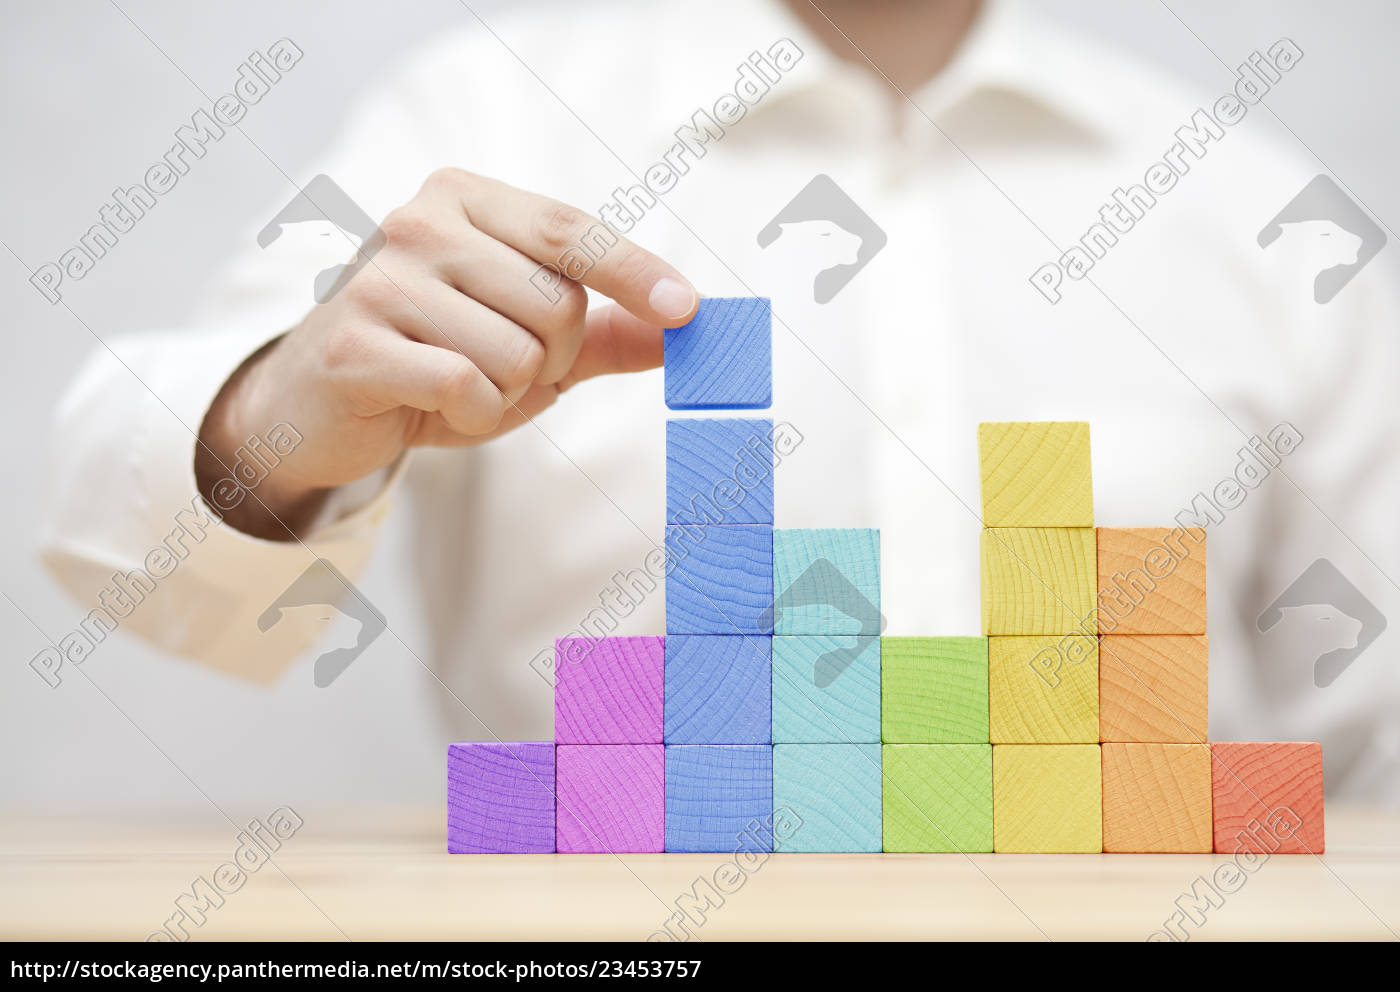 man's, hand, stacking, colorful, wooden, blocks. - 23453757